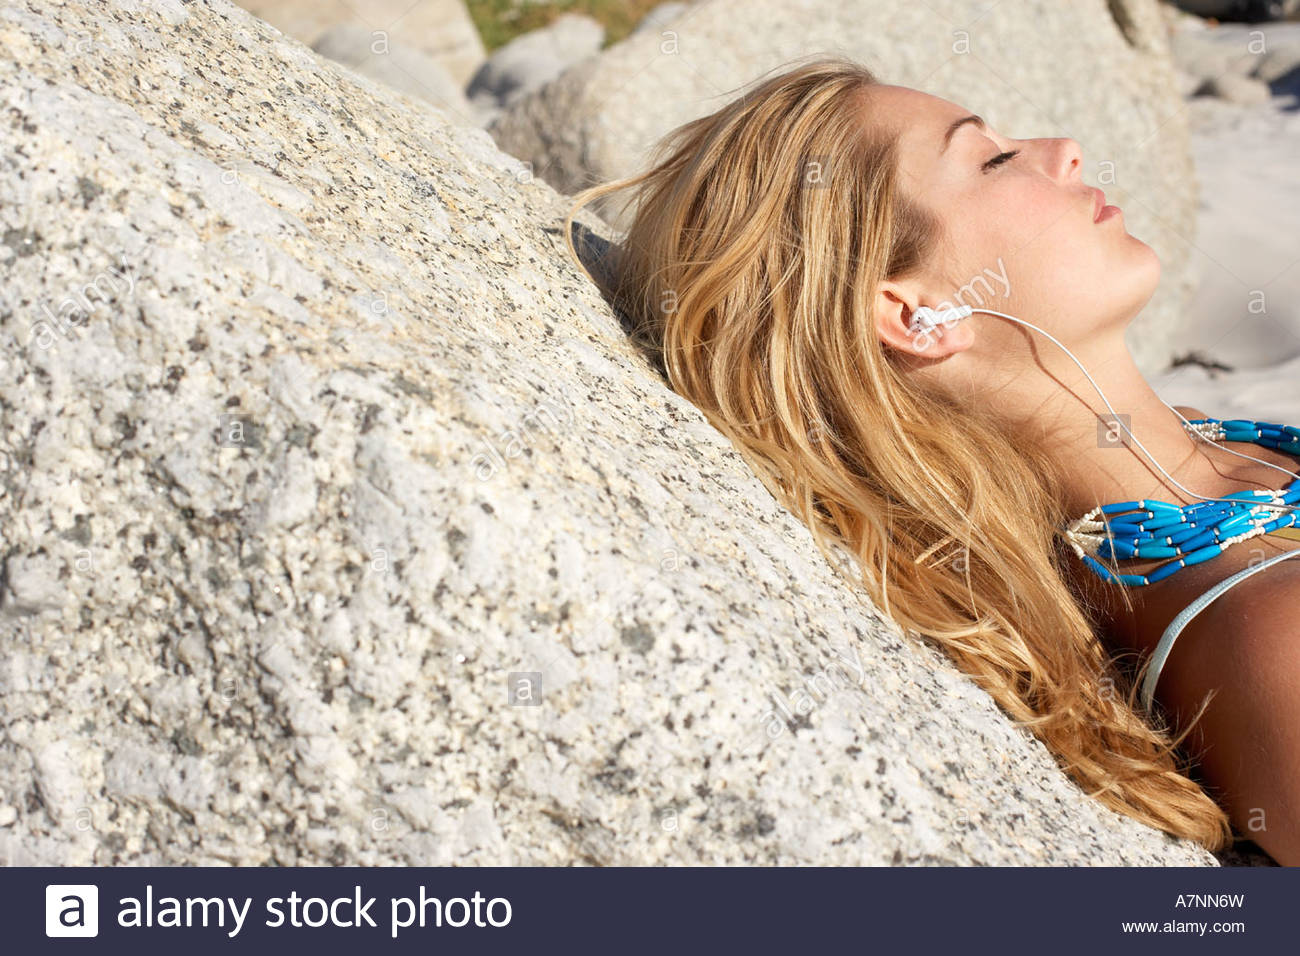 Blonde teenage girl 17 19 relaxing on beach leaning against rock eyes closed side view Stock Photo